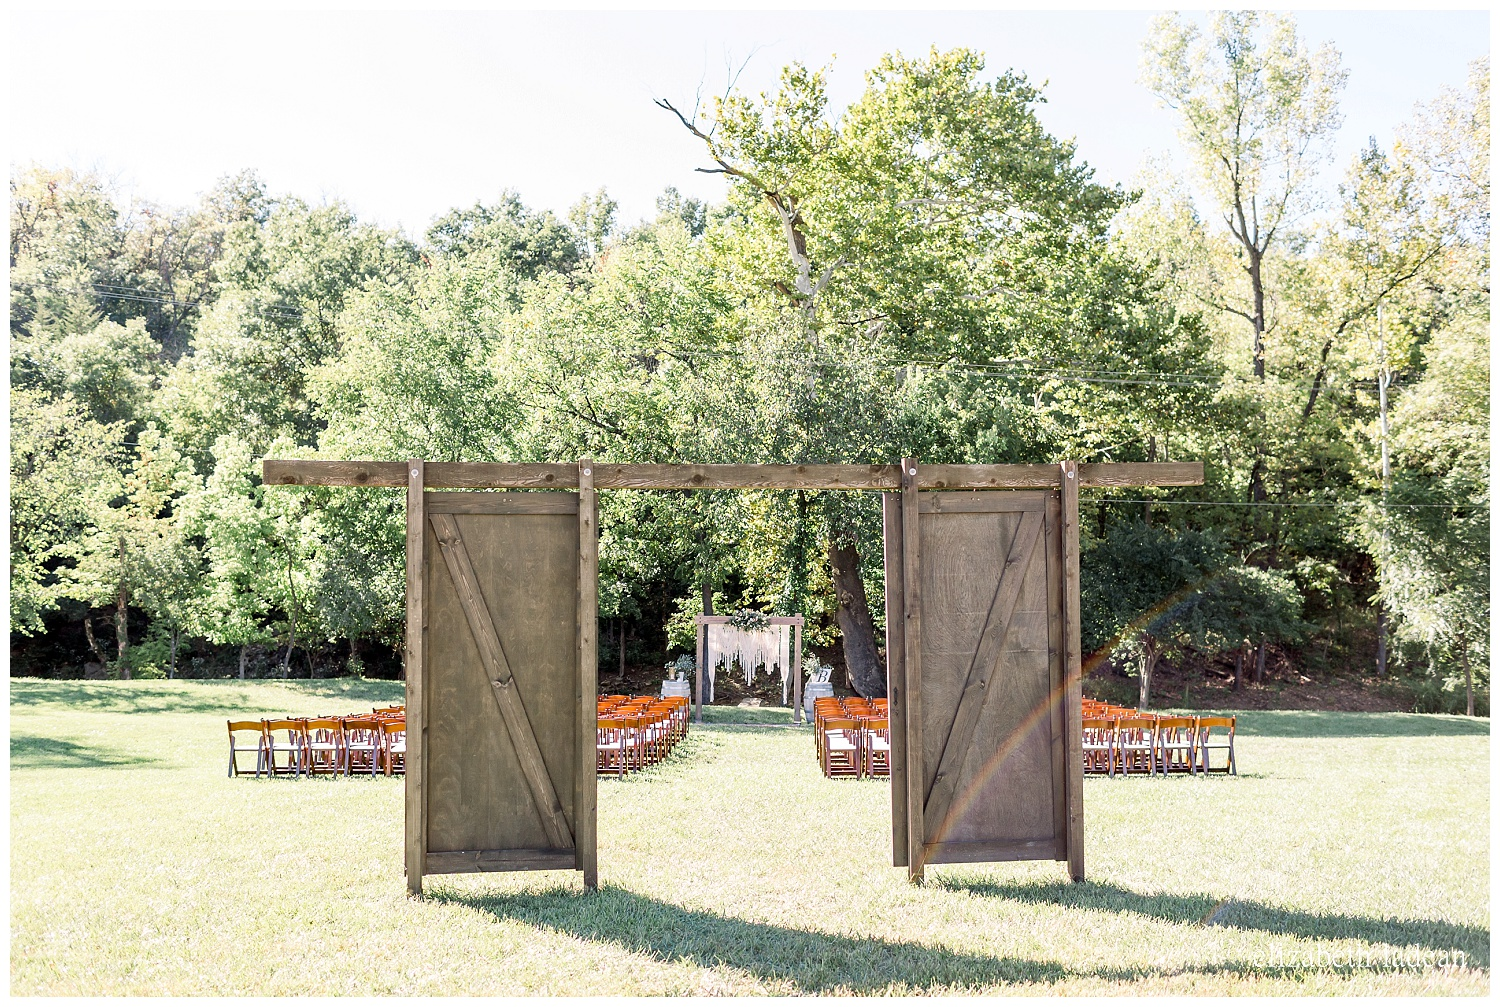 Willow-Creek-Blush-and-Blues-Outdoor-Wedding-Photography-S+Z2018-elizabeth-ladean-photography-photo_0562.jpg